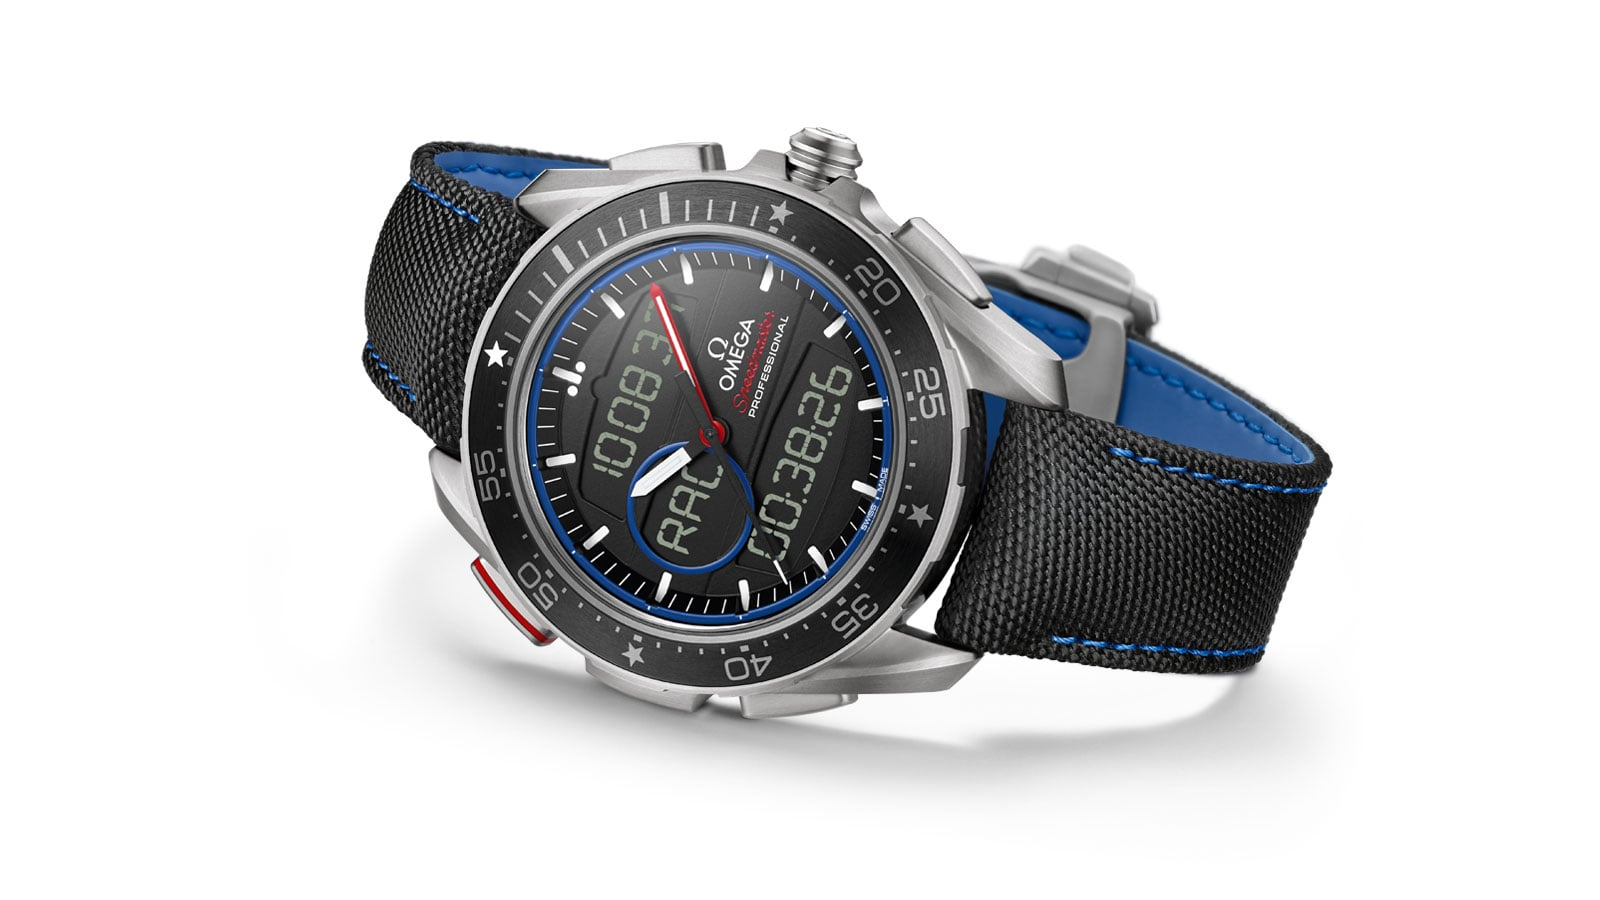 Speedmaster X-33 Regatta watch with a black bezel and dial and black and blue strap